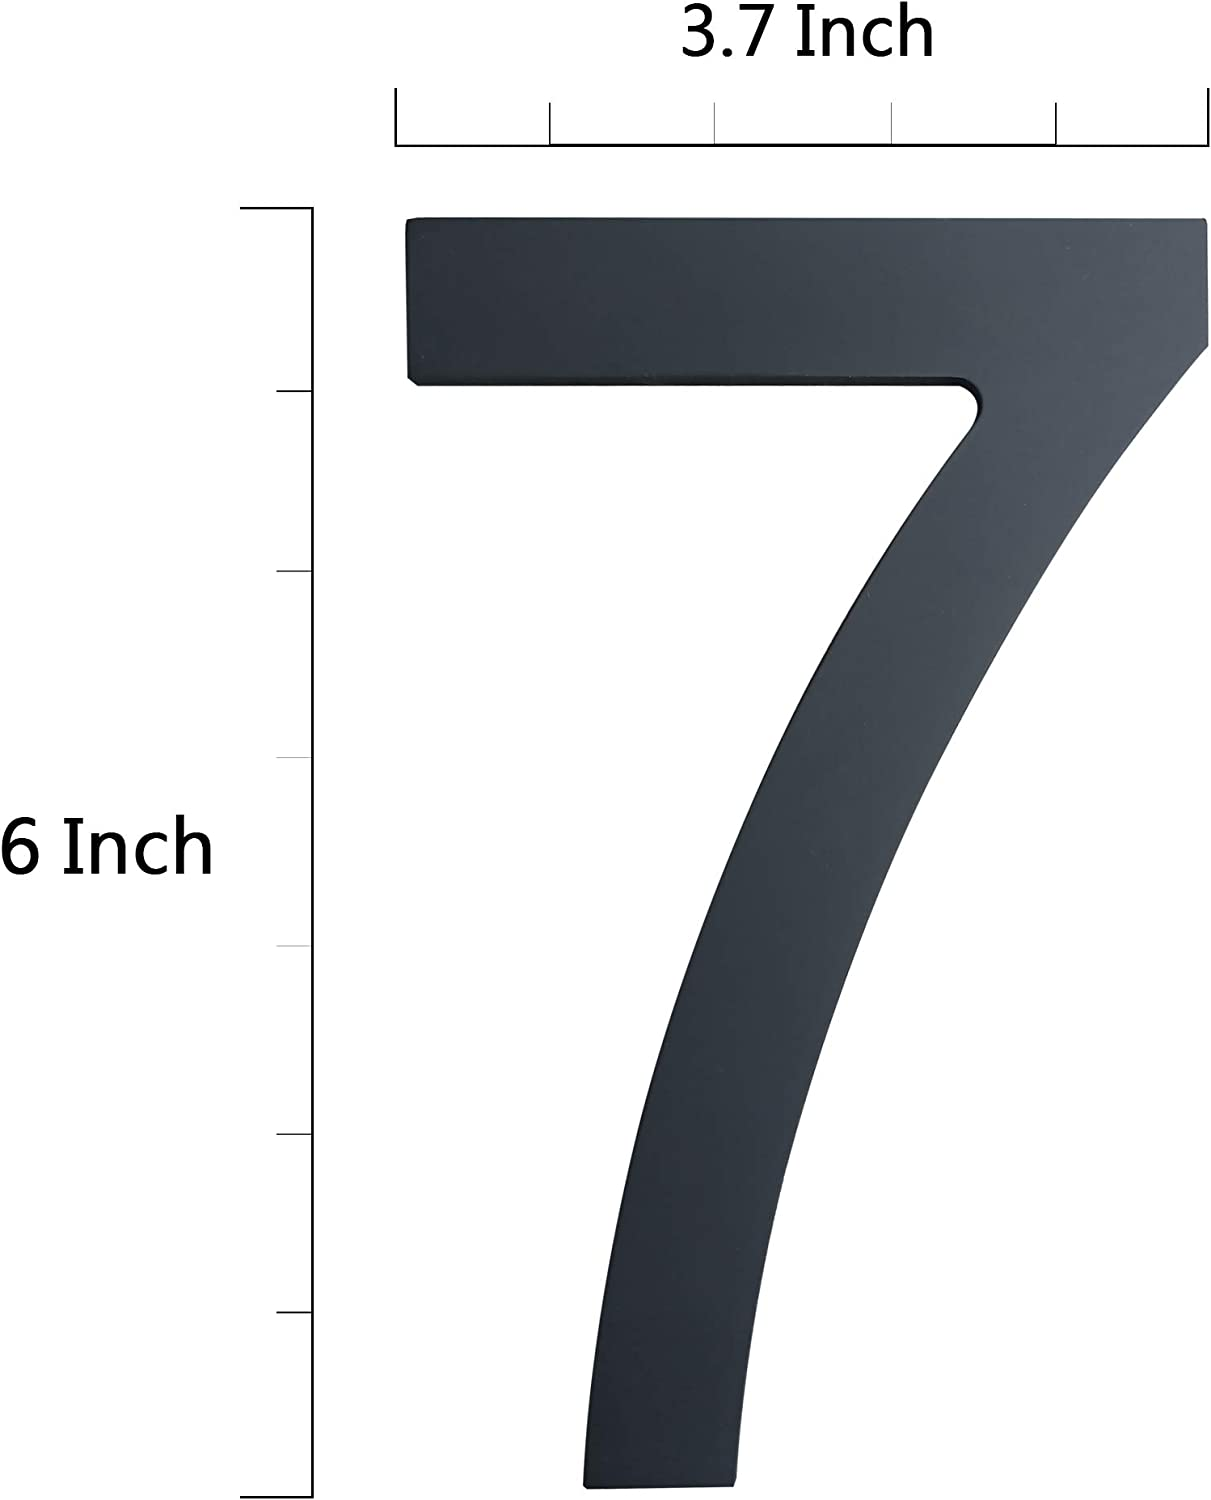 Modern Floating Stainless Steel Home Address Number-Solid Street Numbers for Outdoor//Exterior//Building//Apartment//Yard//Farmhouse//Elegant Black Finish Number 2 6 Inch House Numbers